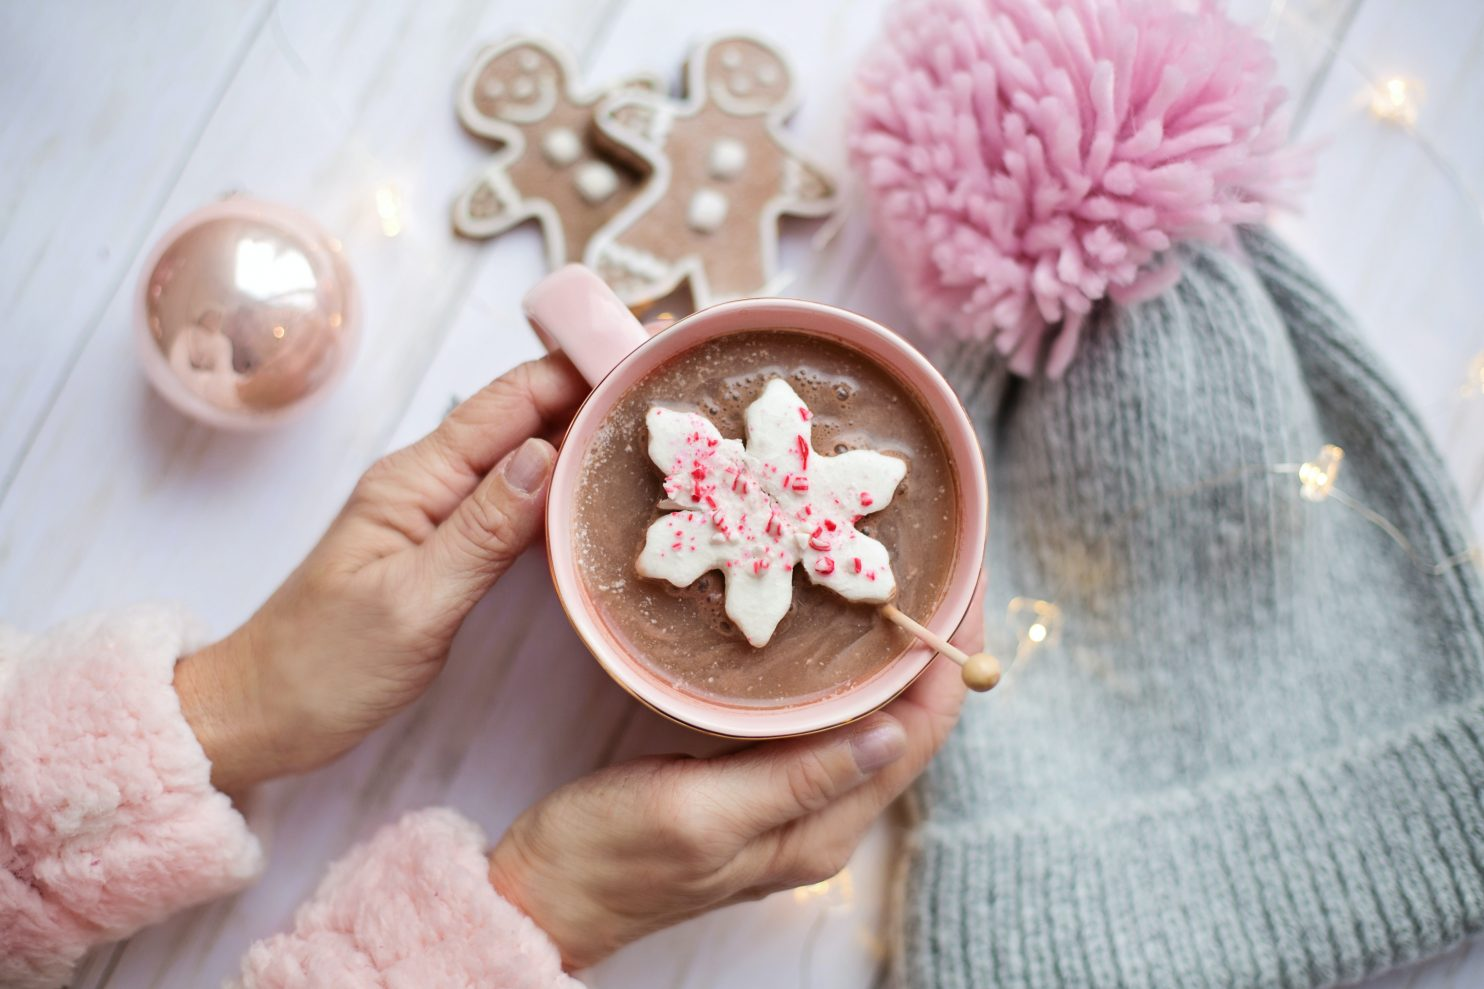 Someone holding a hot chocolate with gingerbread cookies near the mug